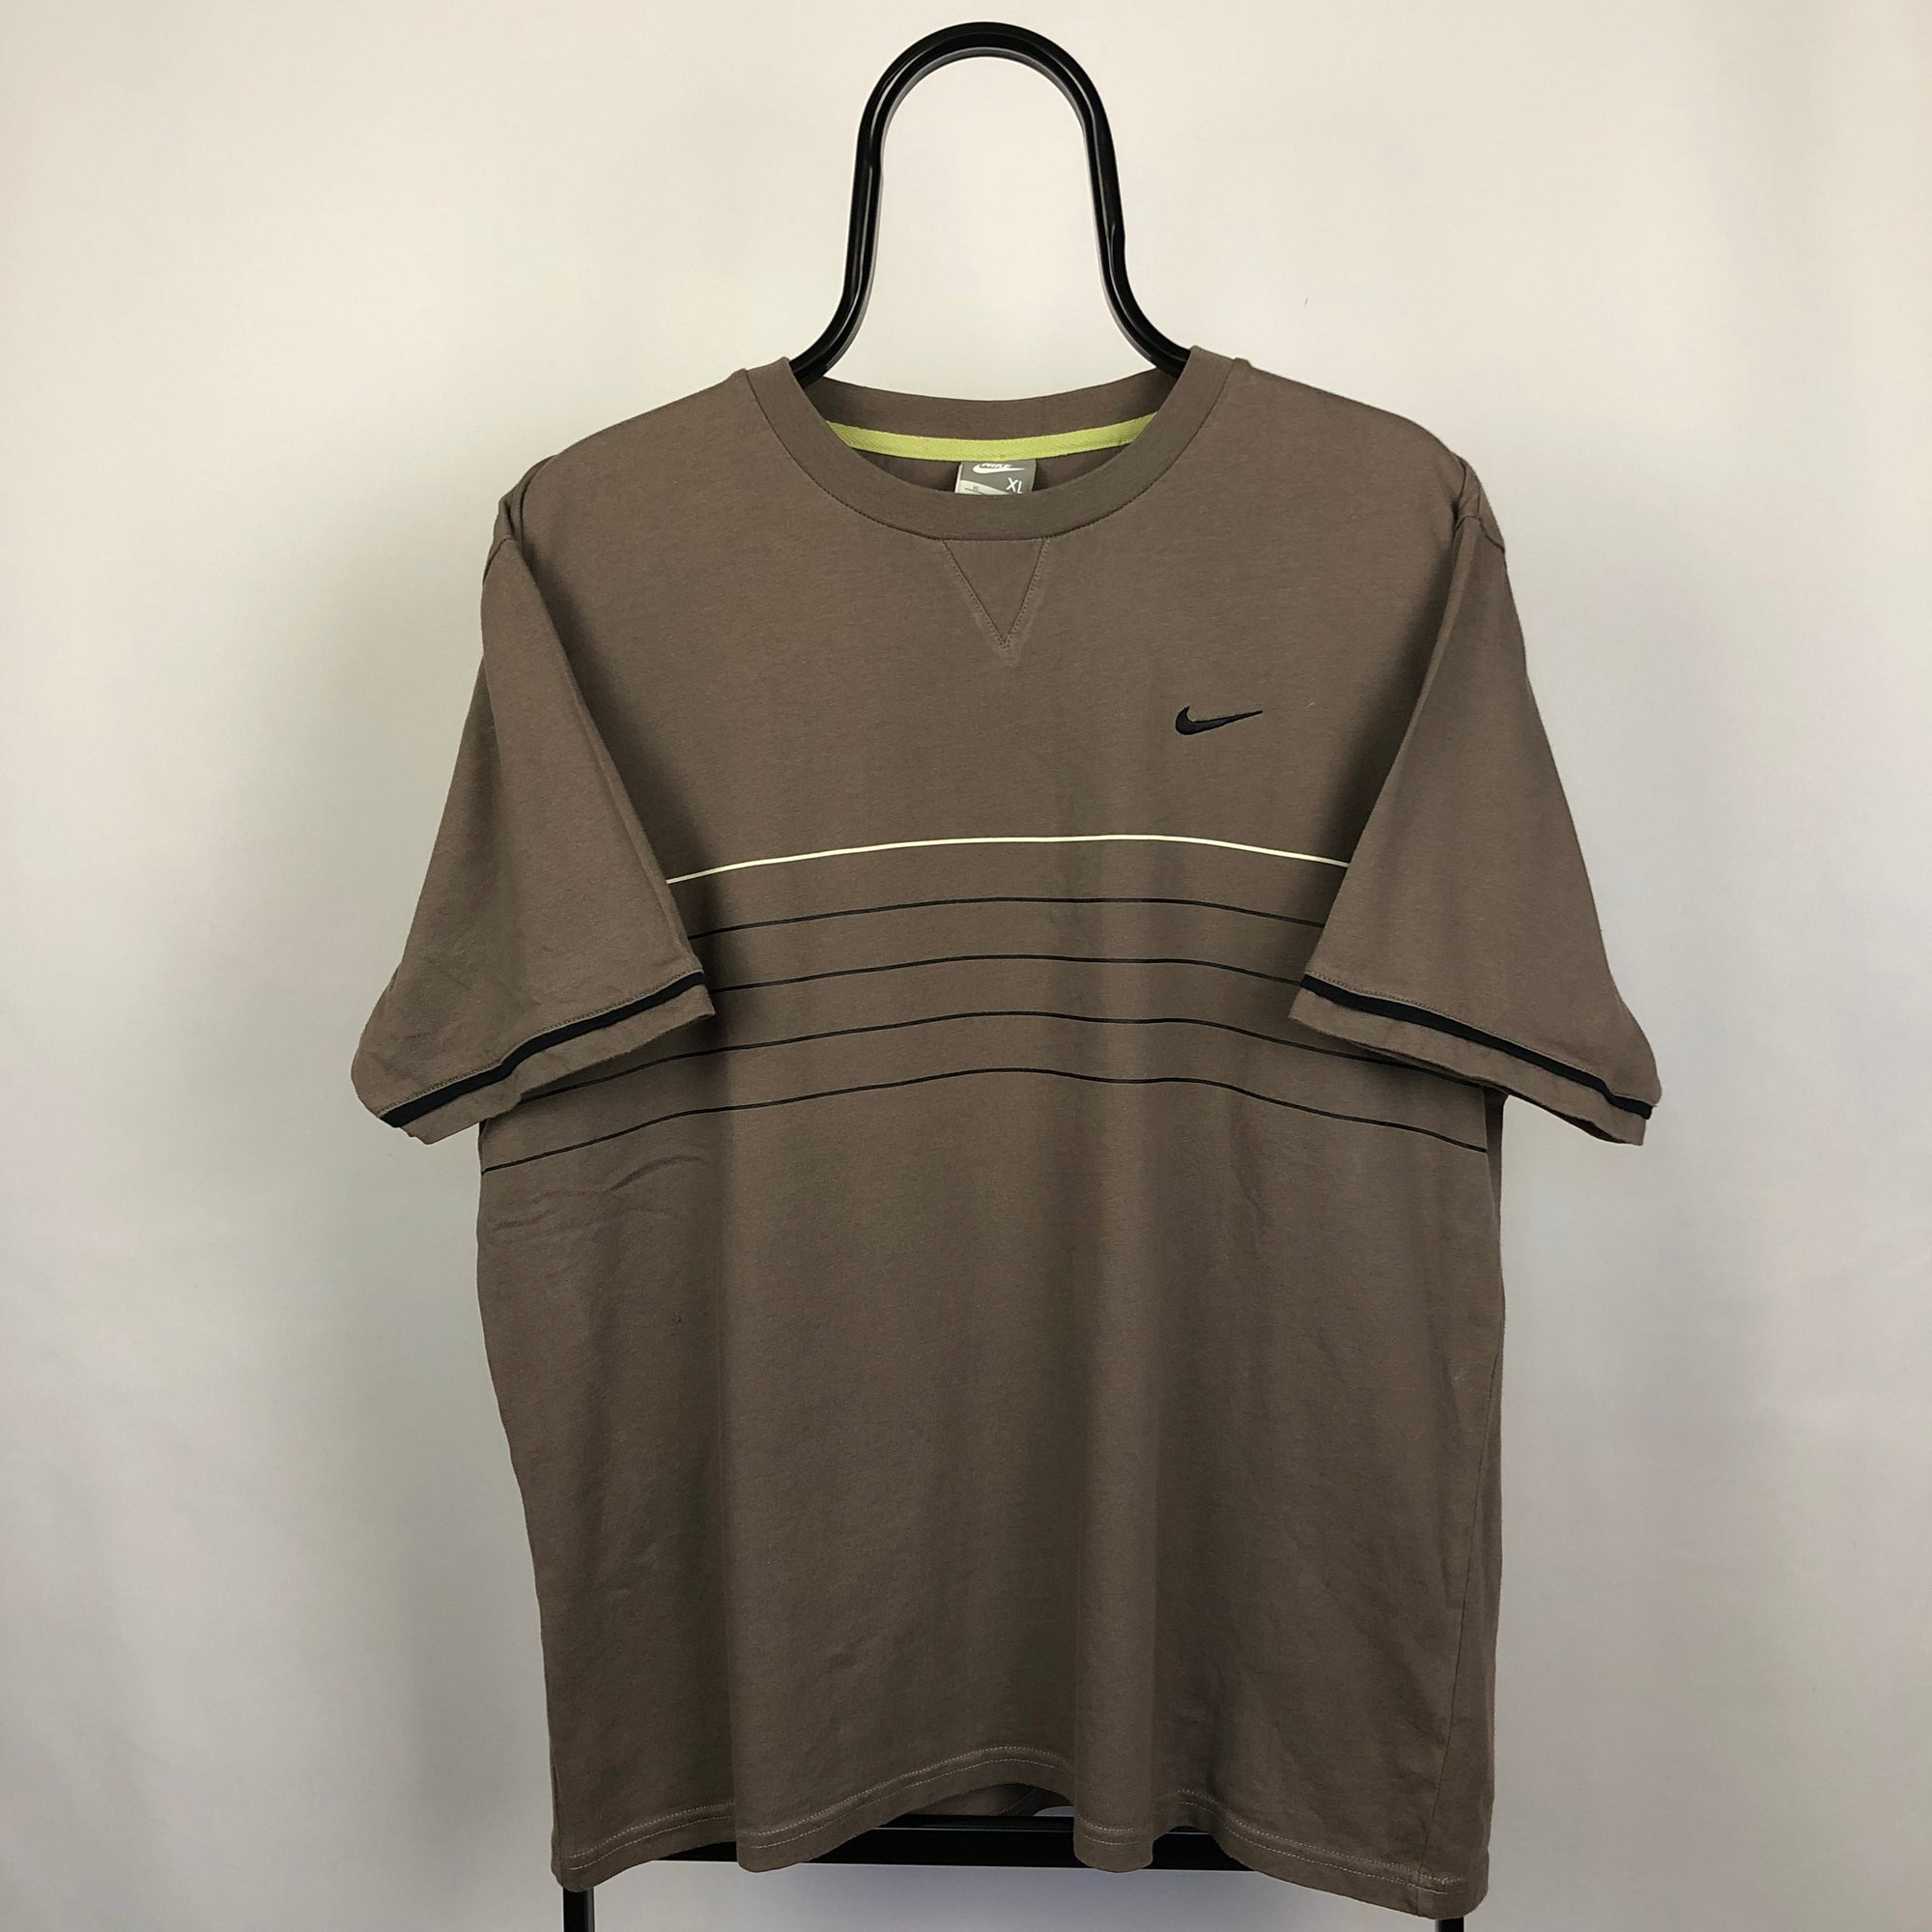 Vintage Nike Tee in Brown - Men's Large/Women's XL